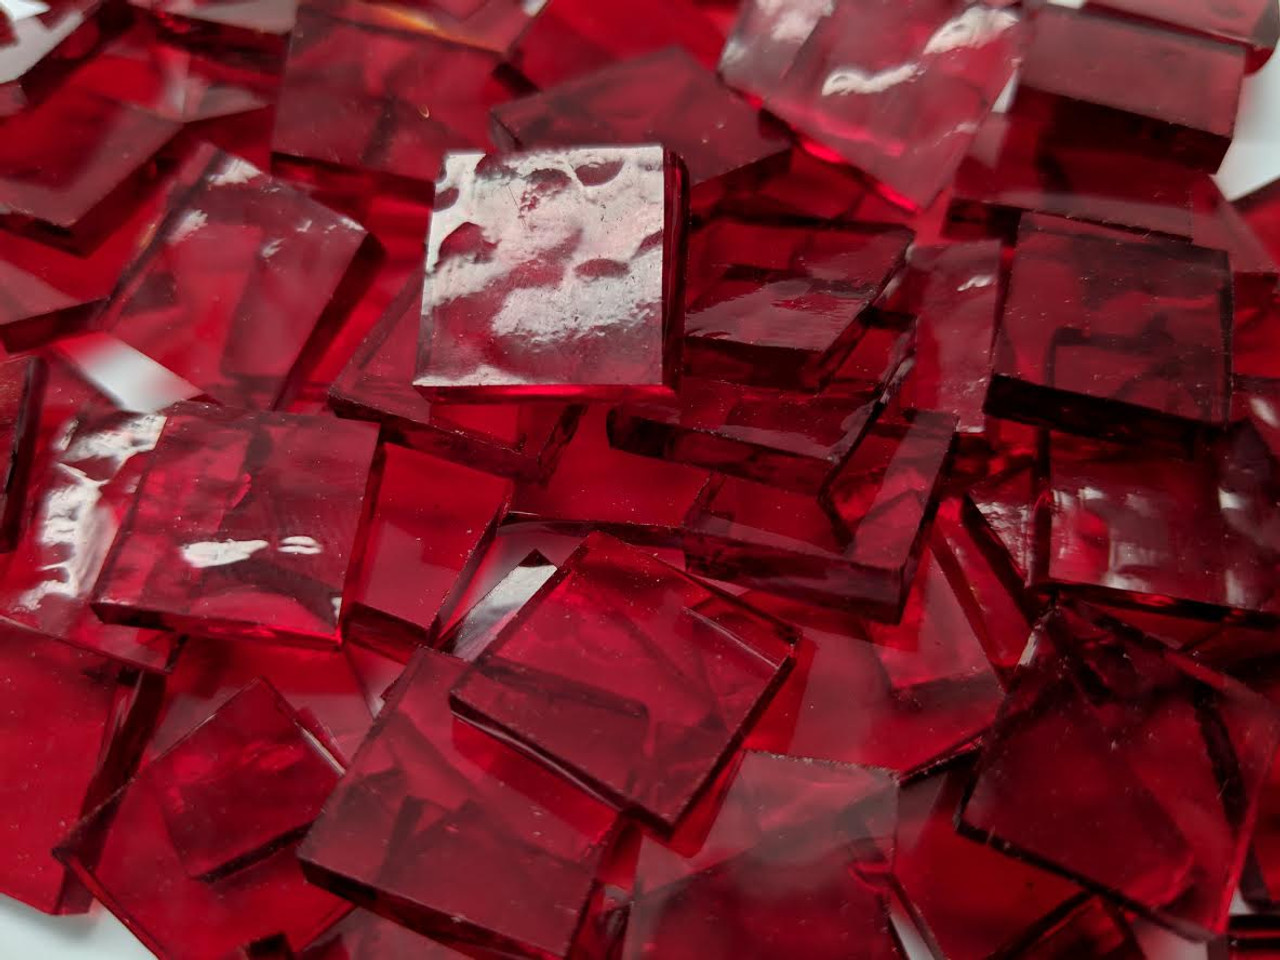 Cherry Red Classic Stained Glass Mosaic Tiles